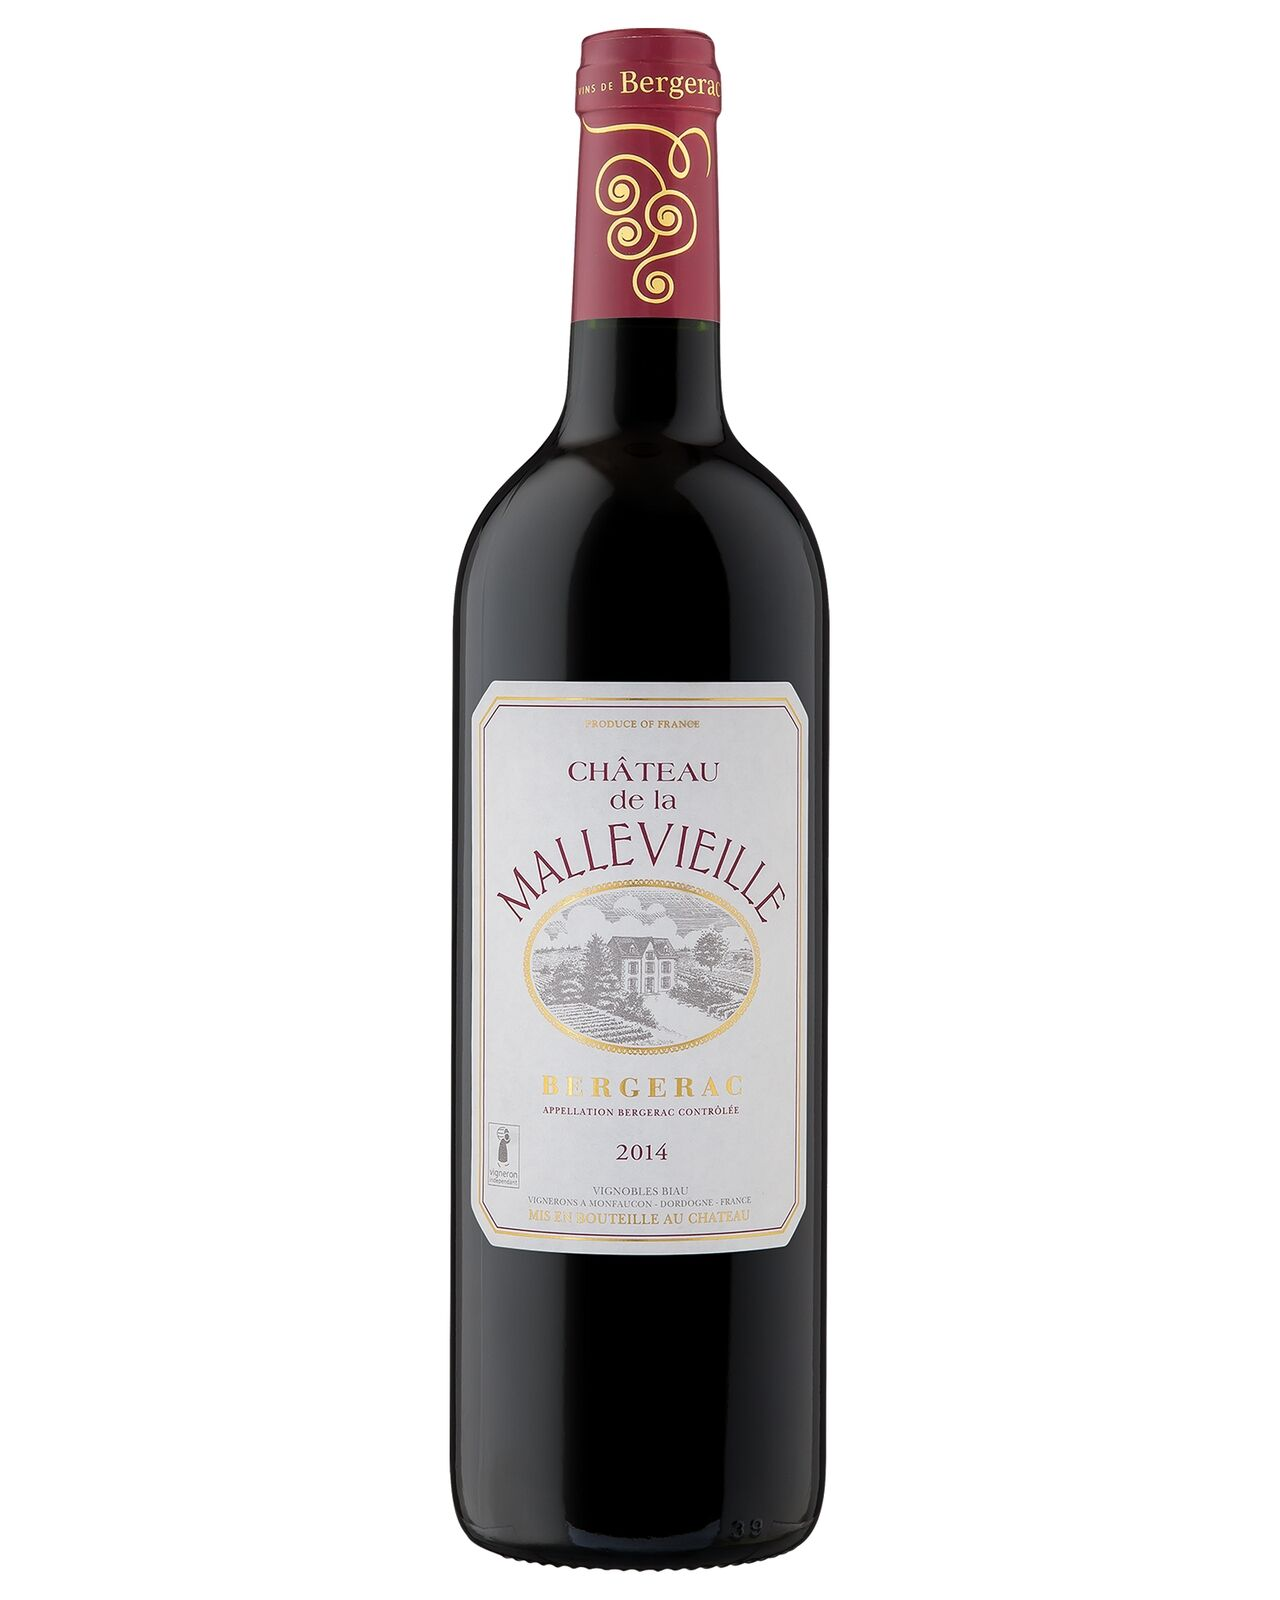 Chateau Mallevieille Cabernet Merlot 2014 bottle Red Blend Dry Red Wine 750mL